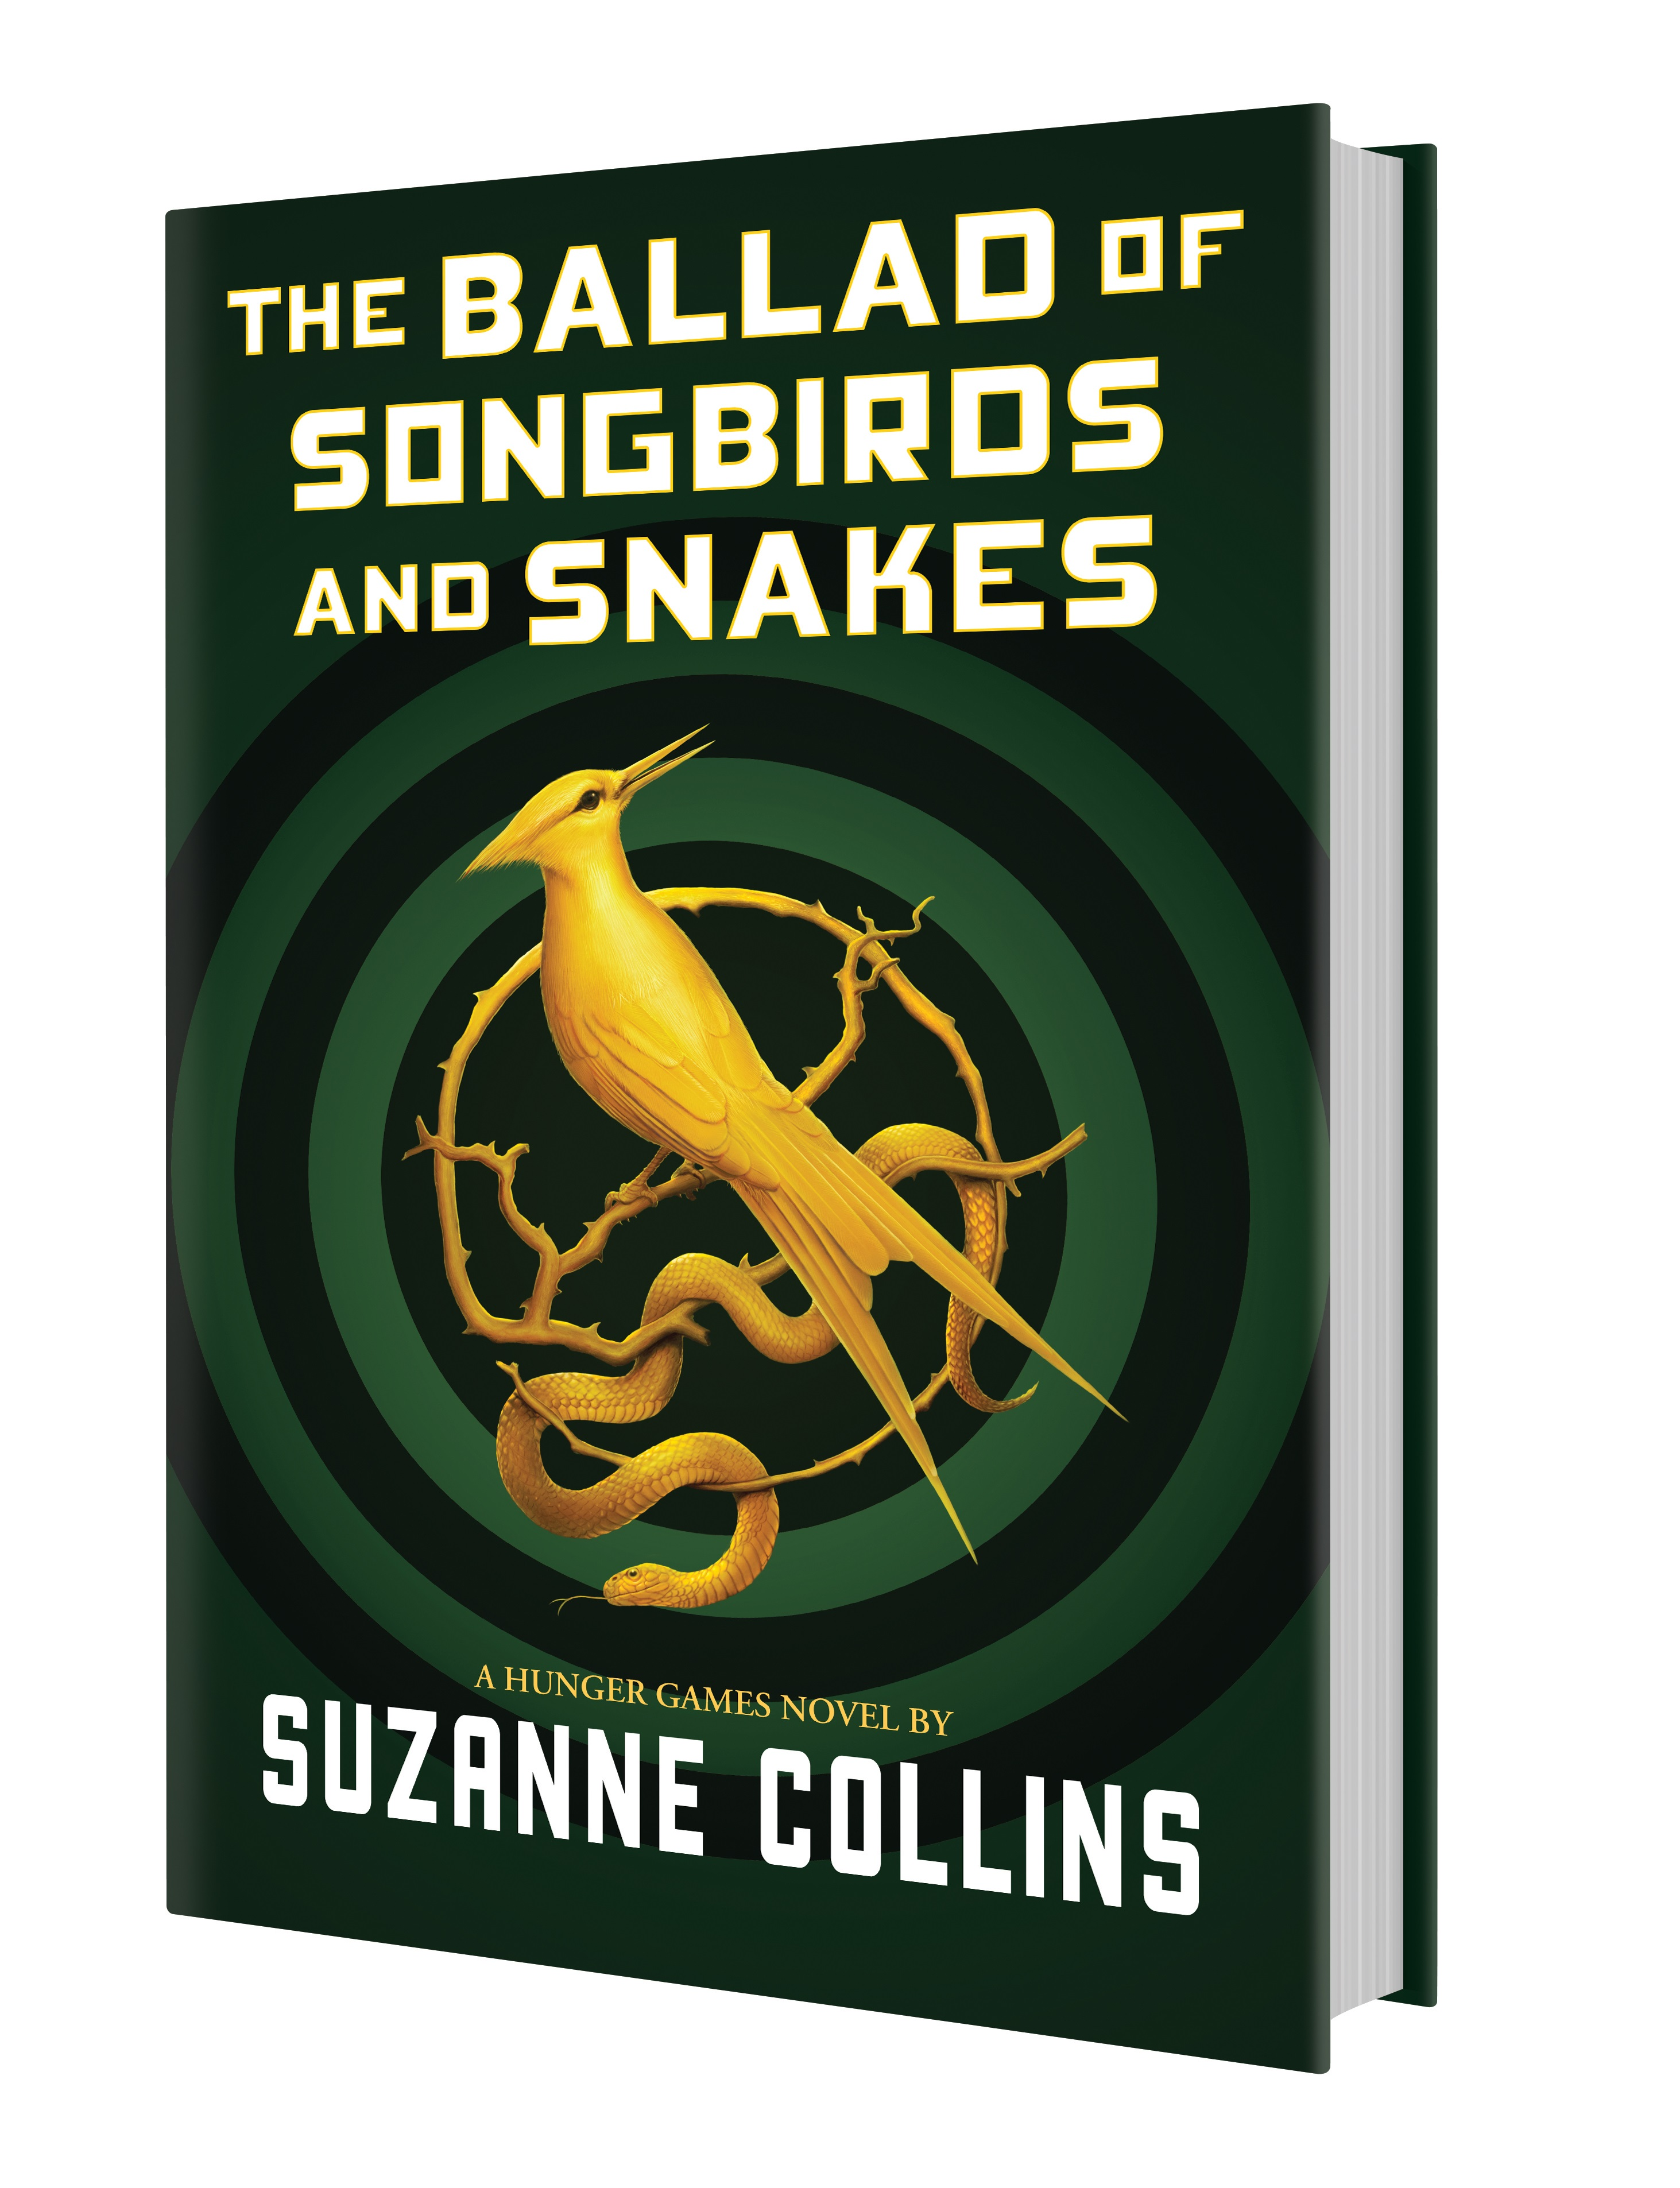 Title And Cover For New Hunger Games Novel Revealed